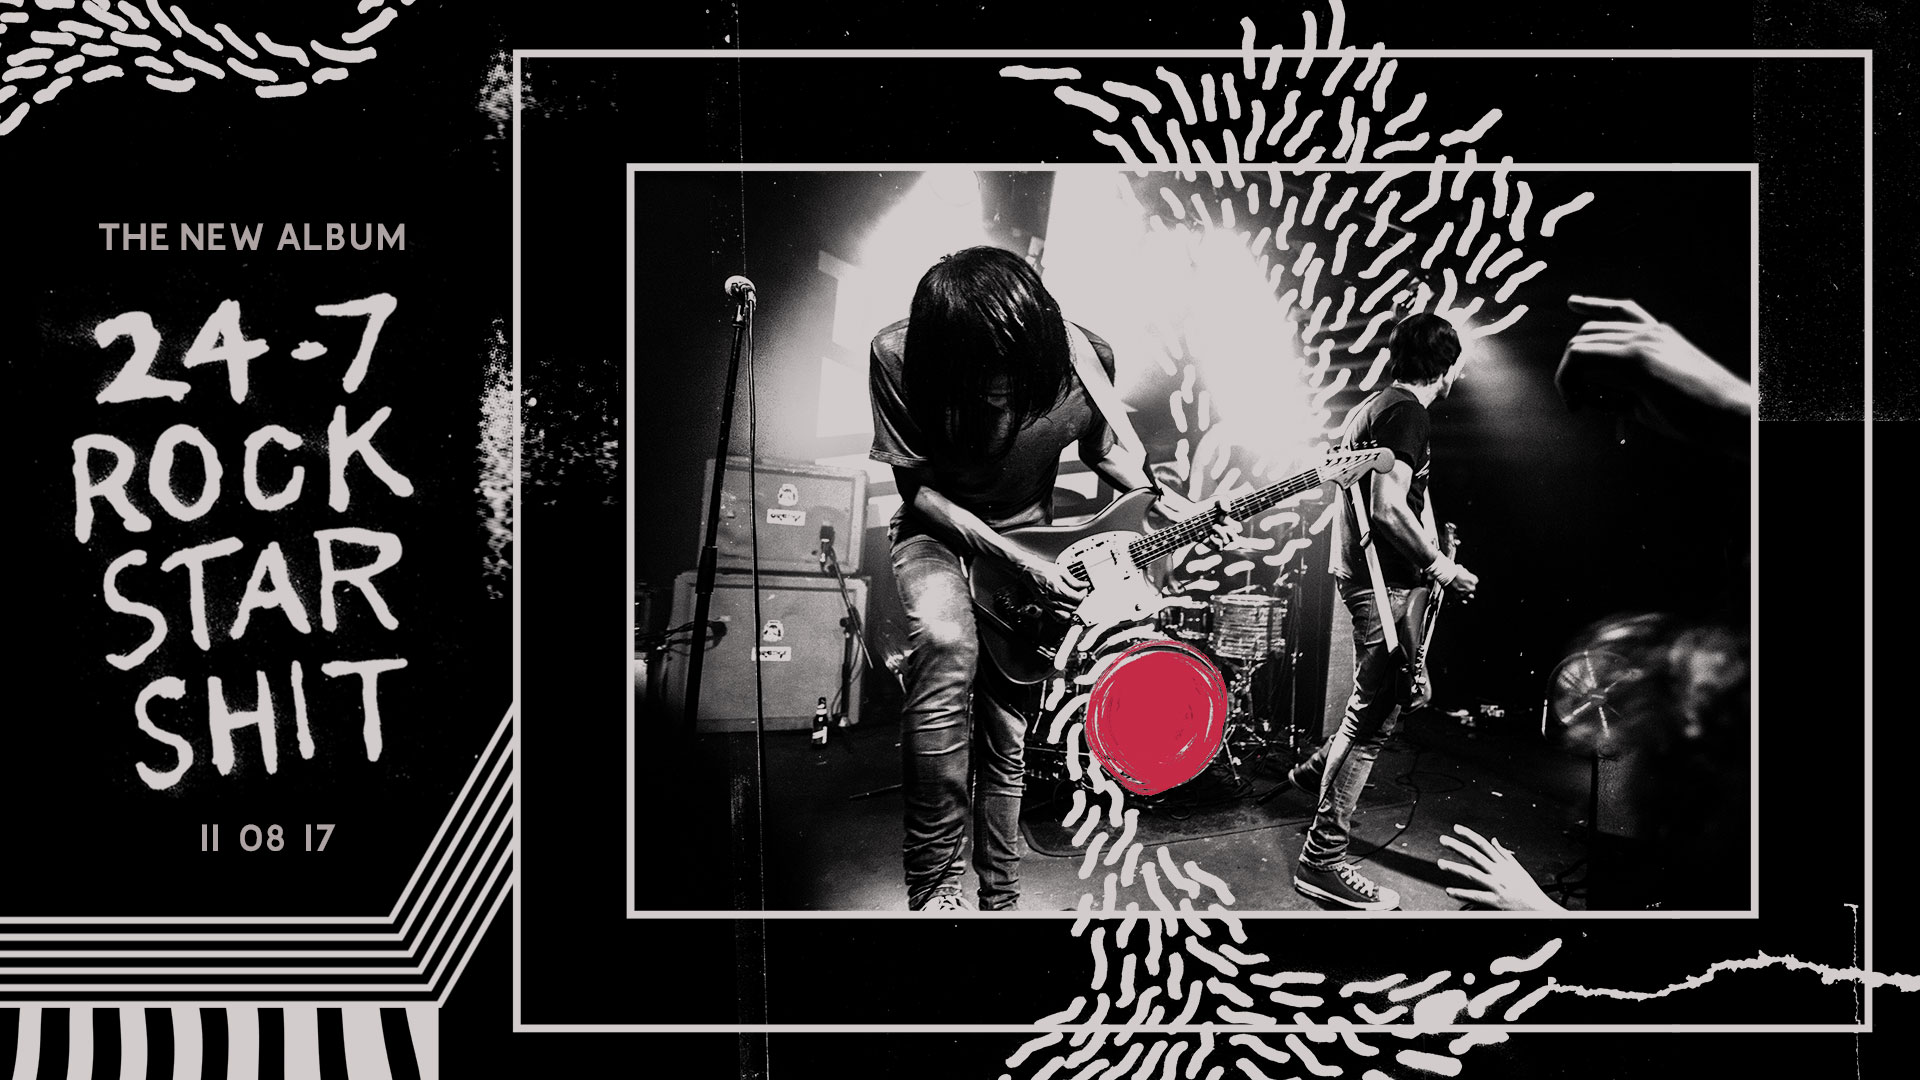 """The Cribs have announced that they will be releasing their new album  24-7 Rock Star Sh★t  on August 11th, 2017. With this announcement, they released the new single """" Rainbow Ridge """" along with a music video. Zane Lowe will be premiering """"What Have You Done For Me?"""", another single, on Beats 1 in Apple Music."""